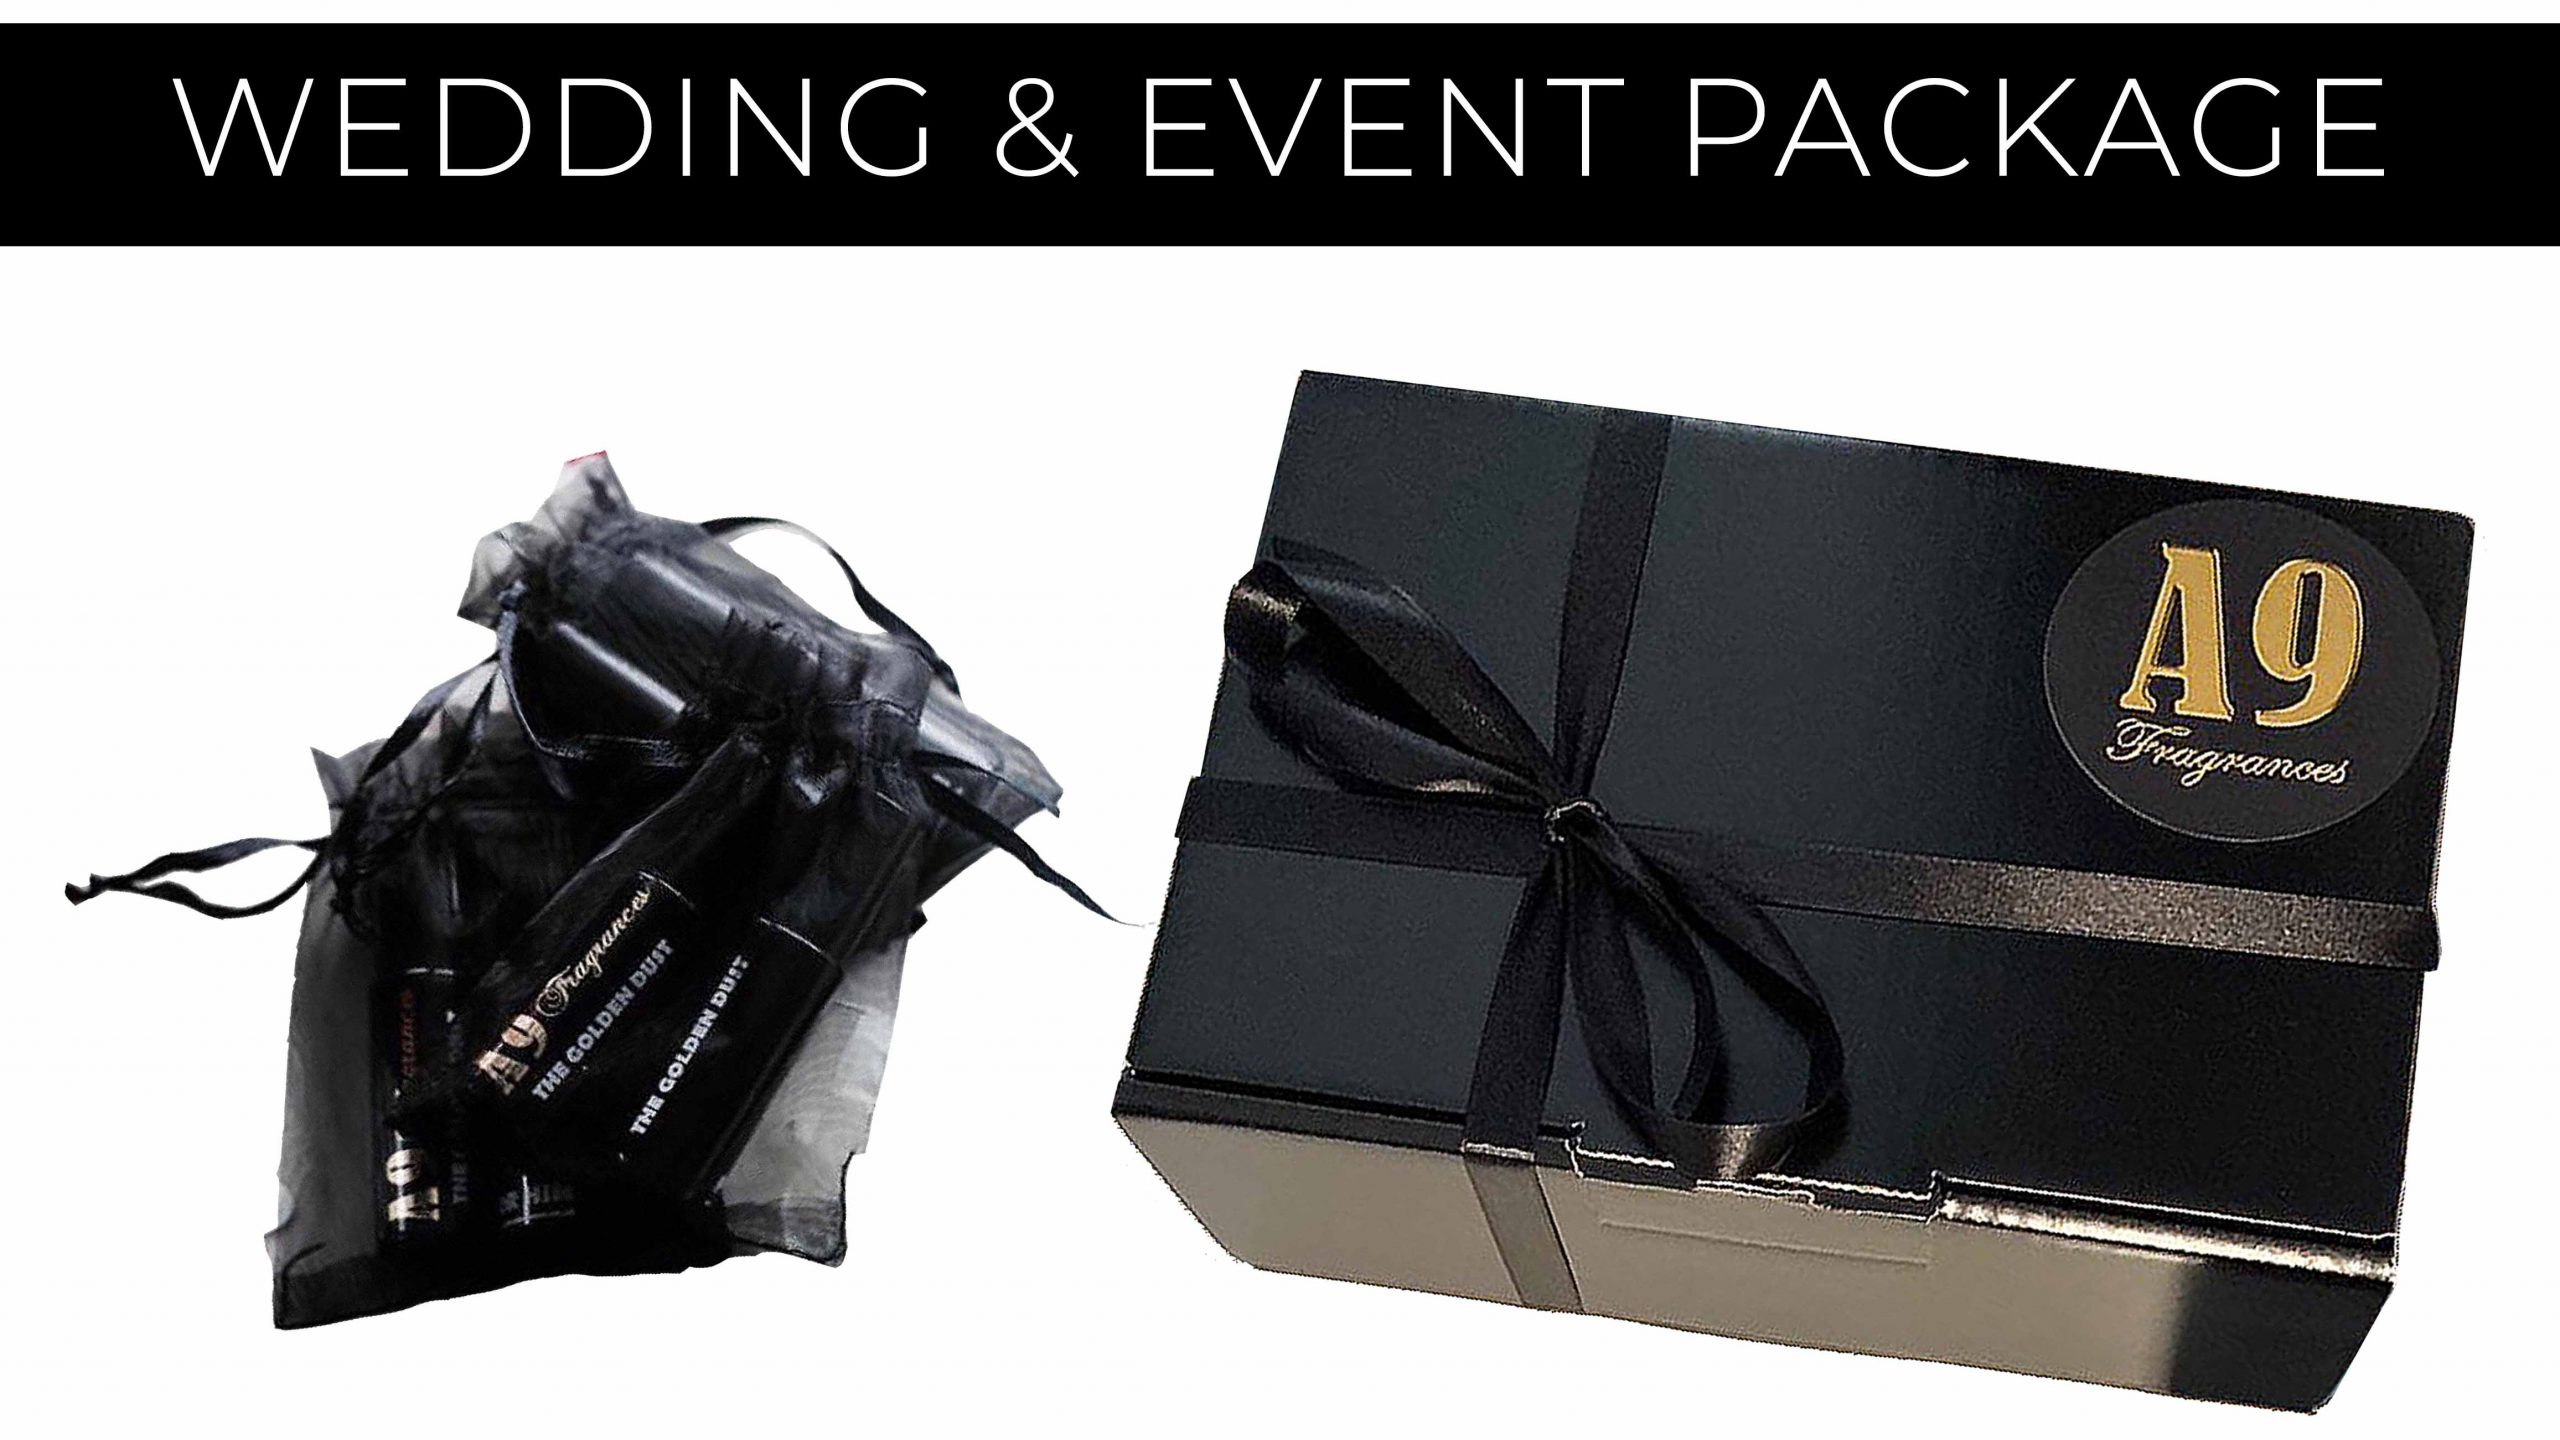 Wedding & Event Package